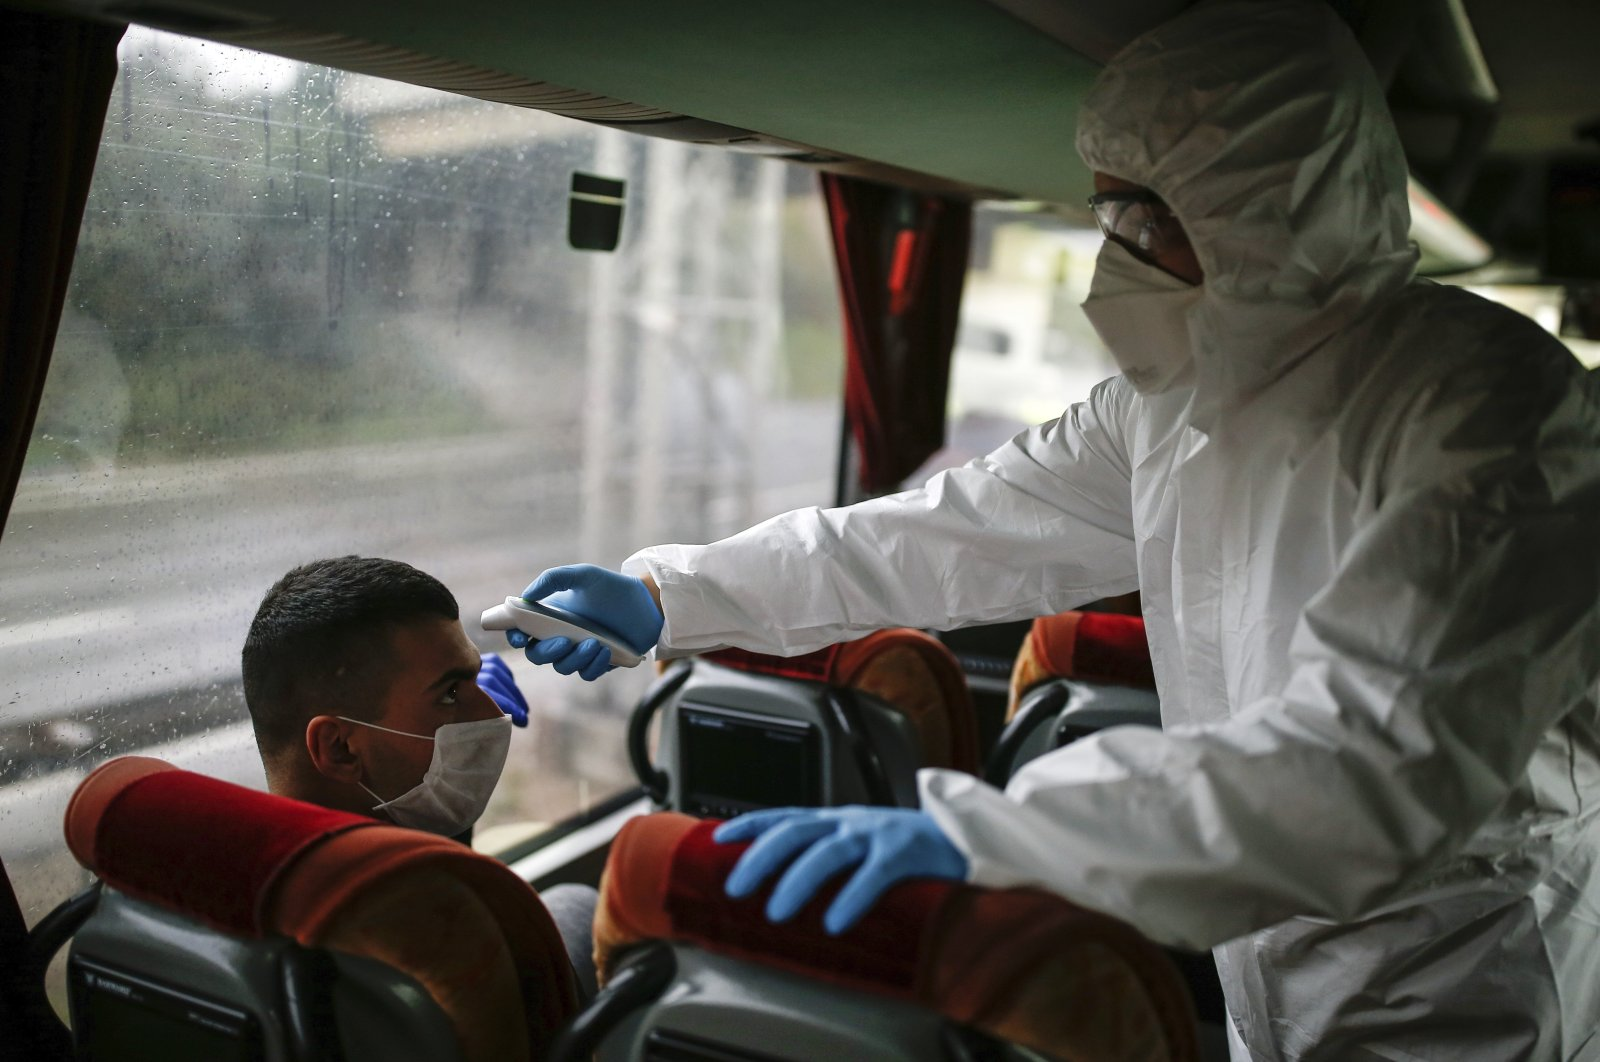 A health official measures the body temperature of a passenger on a bus at a checkpoint, on the Asian side of Istanbul, March 29, 2020. (AP Photo)